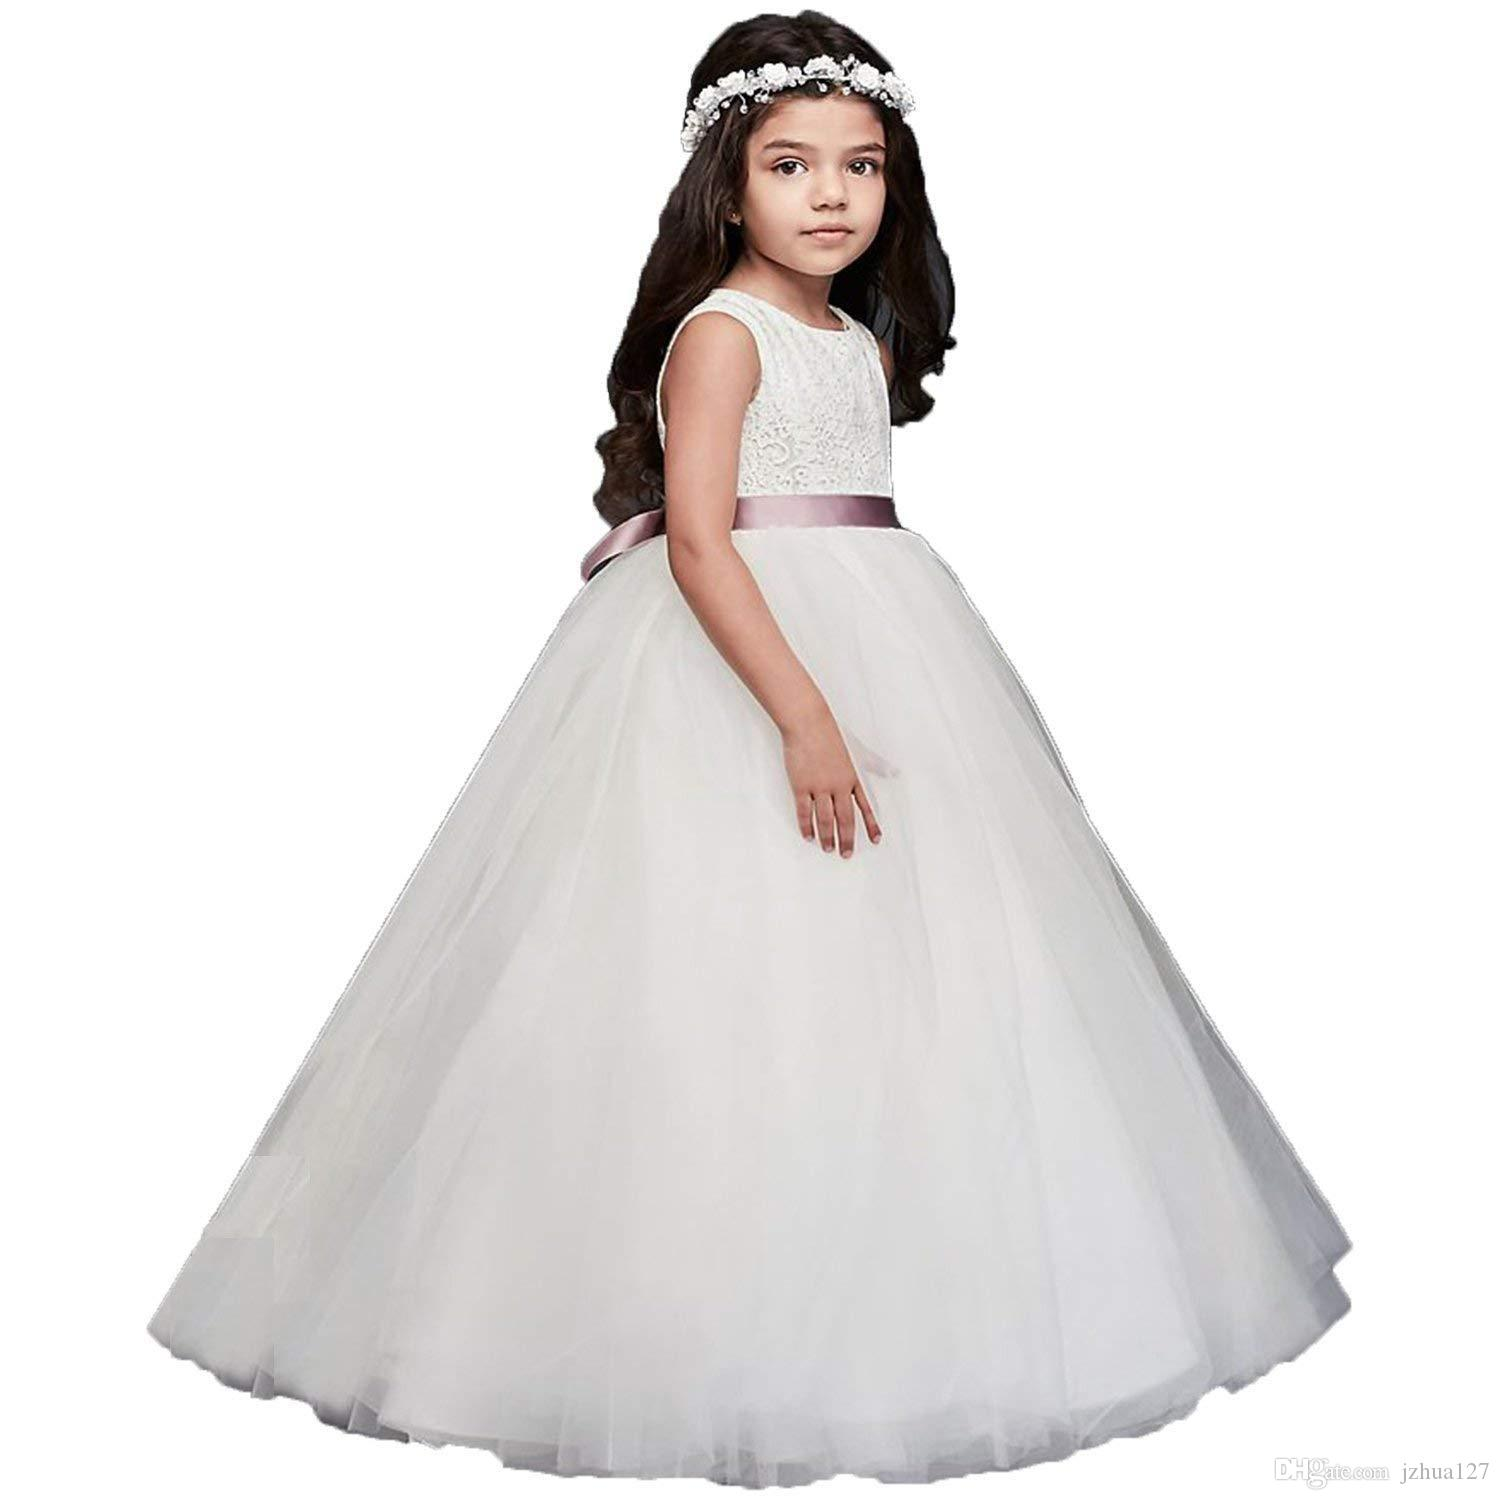 b88d370fc42 Ivory Fancy Lace Flower Girl Dress With Heart Cutout On Back 2 14 Years Old  Girl Bridesmaid Dress Communion Simple Flower Girl Dresses Toddler Formal  ...